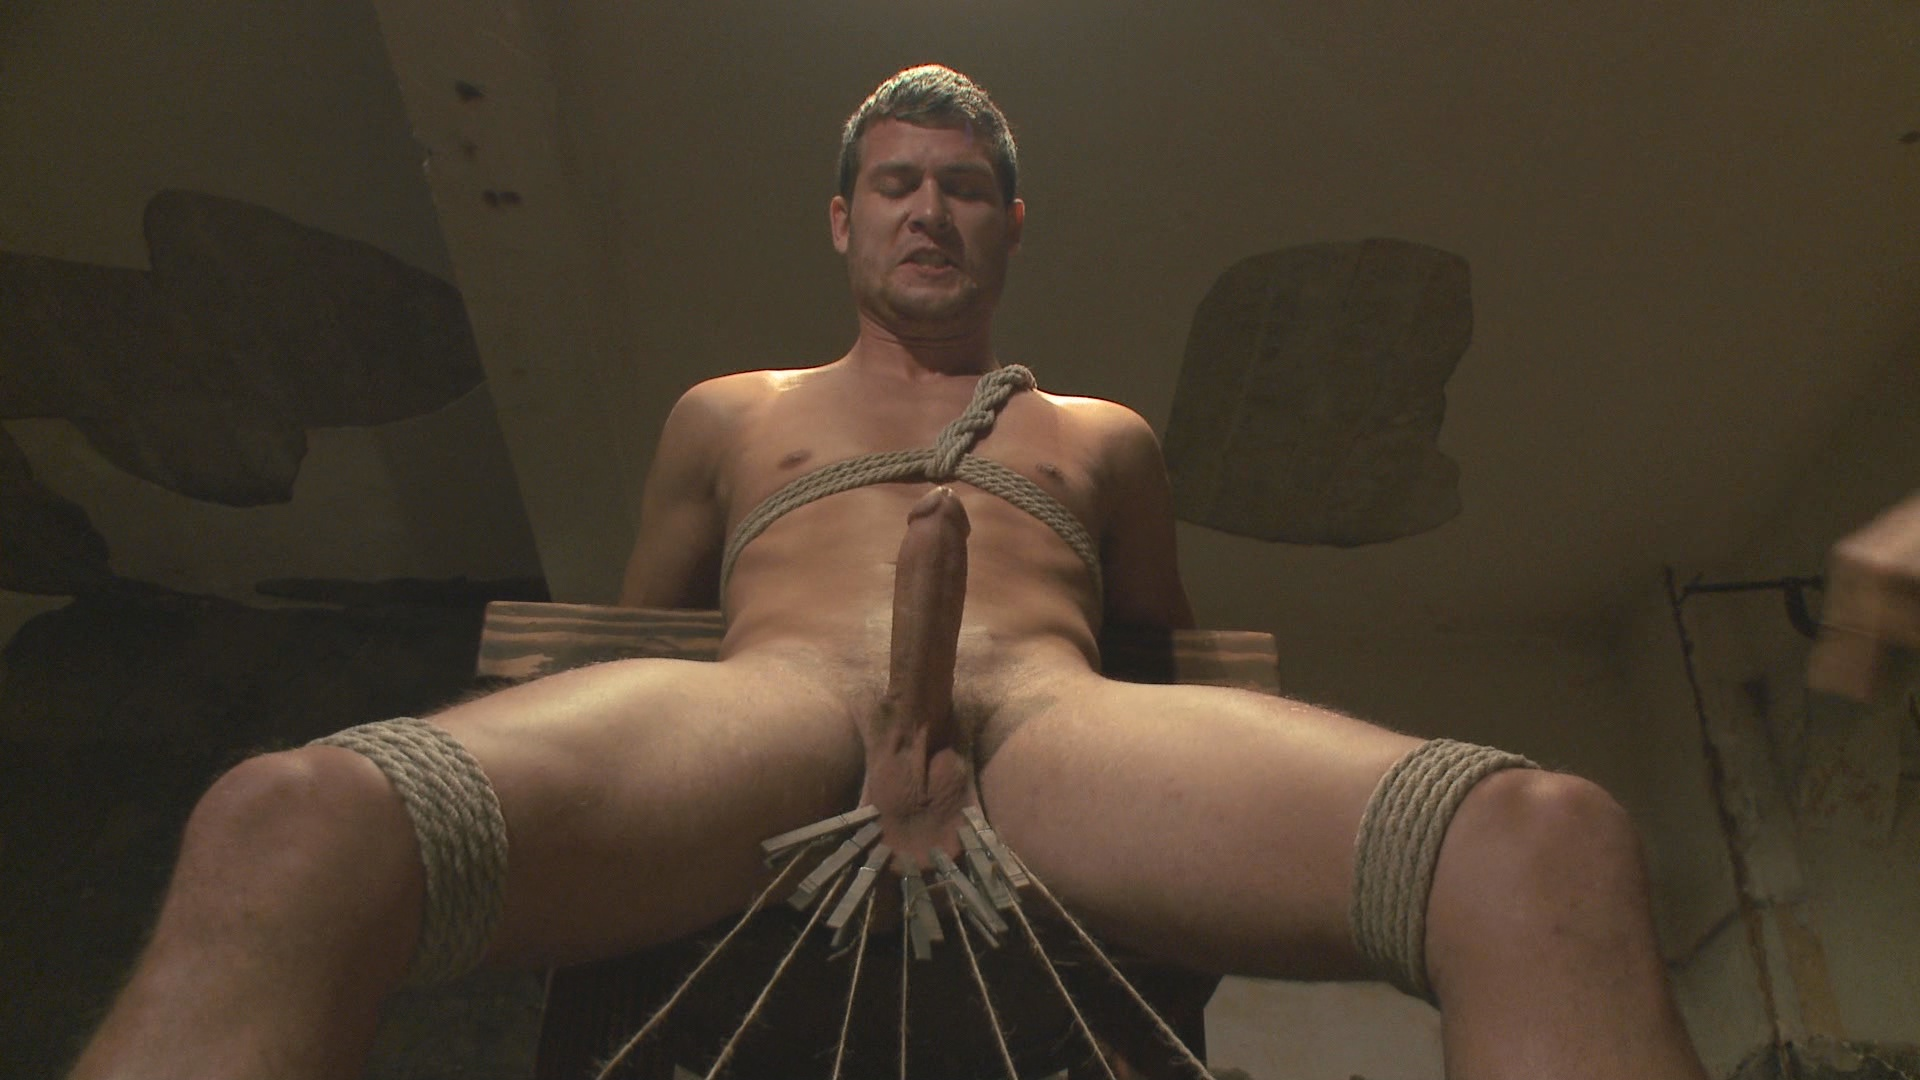 30 Minutes Of Torment: Hayden Richards Vs The Chair And The Chair Won Xvideo gay